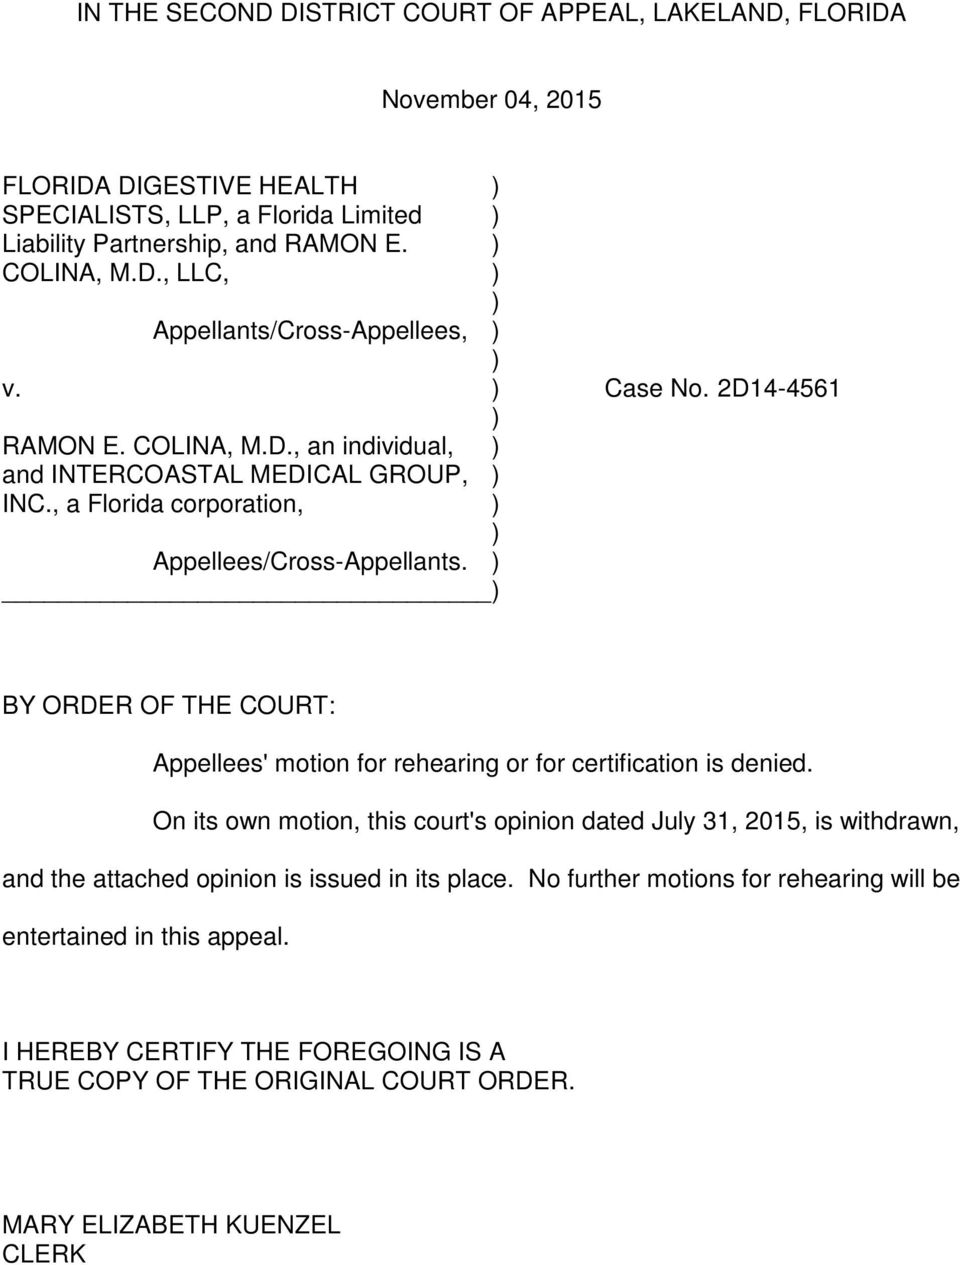 BY ORDER OF THE COURT: Appellees' motion for rehearing or for certification is denied.